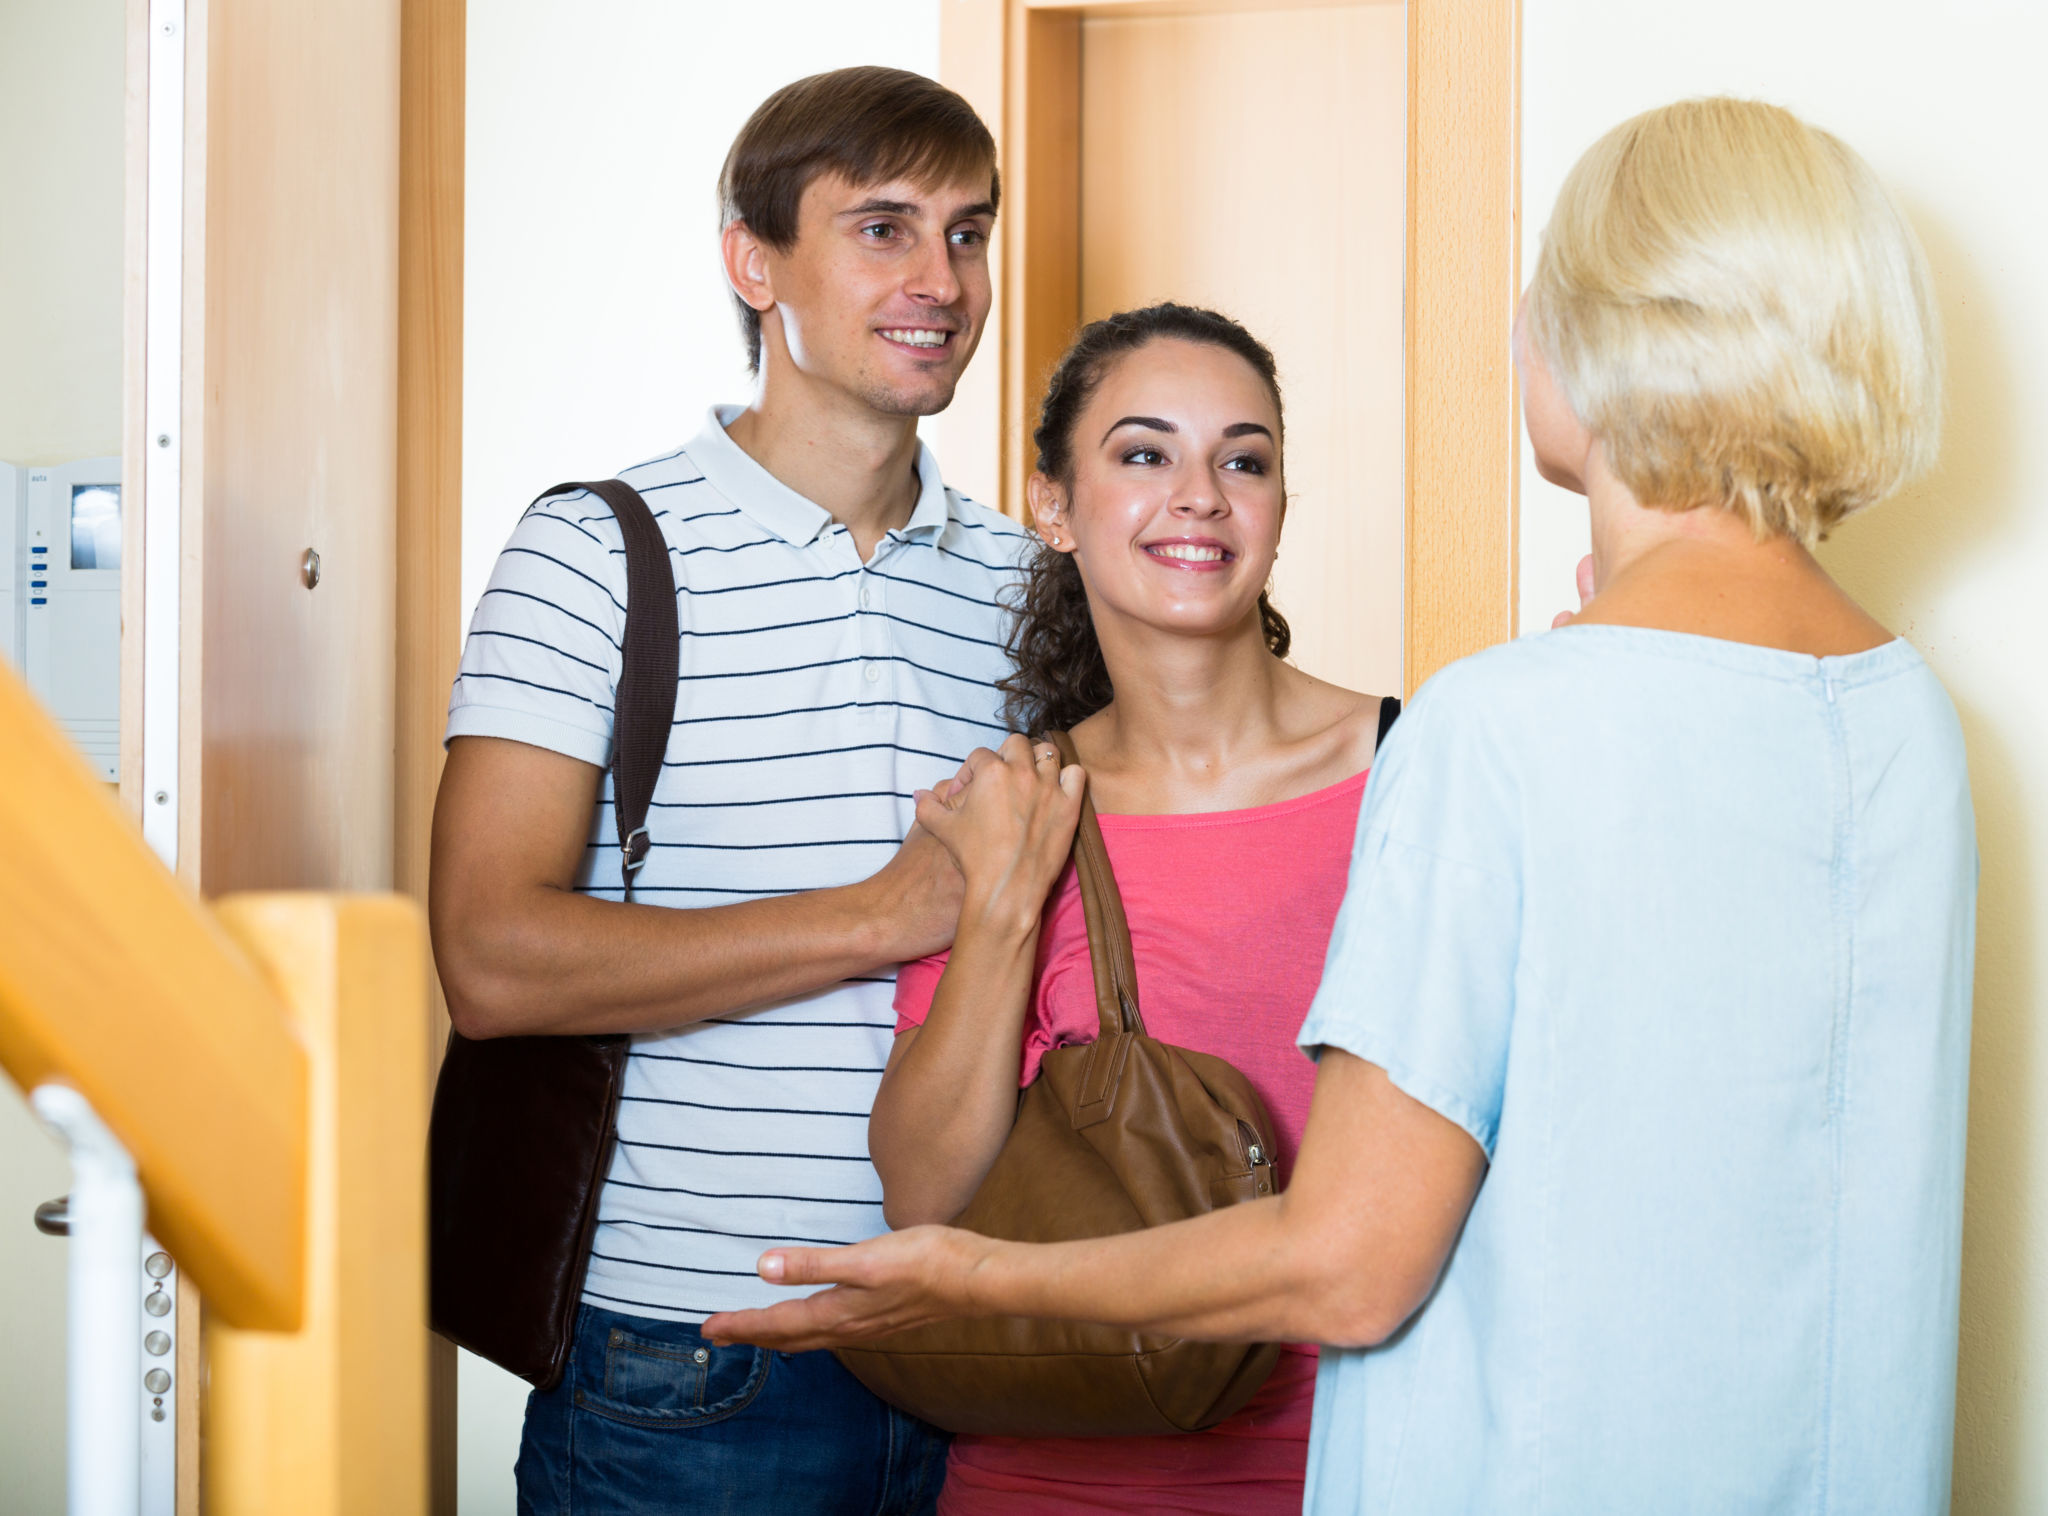 girlfriend meeting the parents for the first time, standing in doorway with boyfriend and his mom